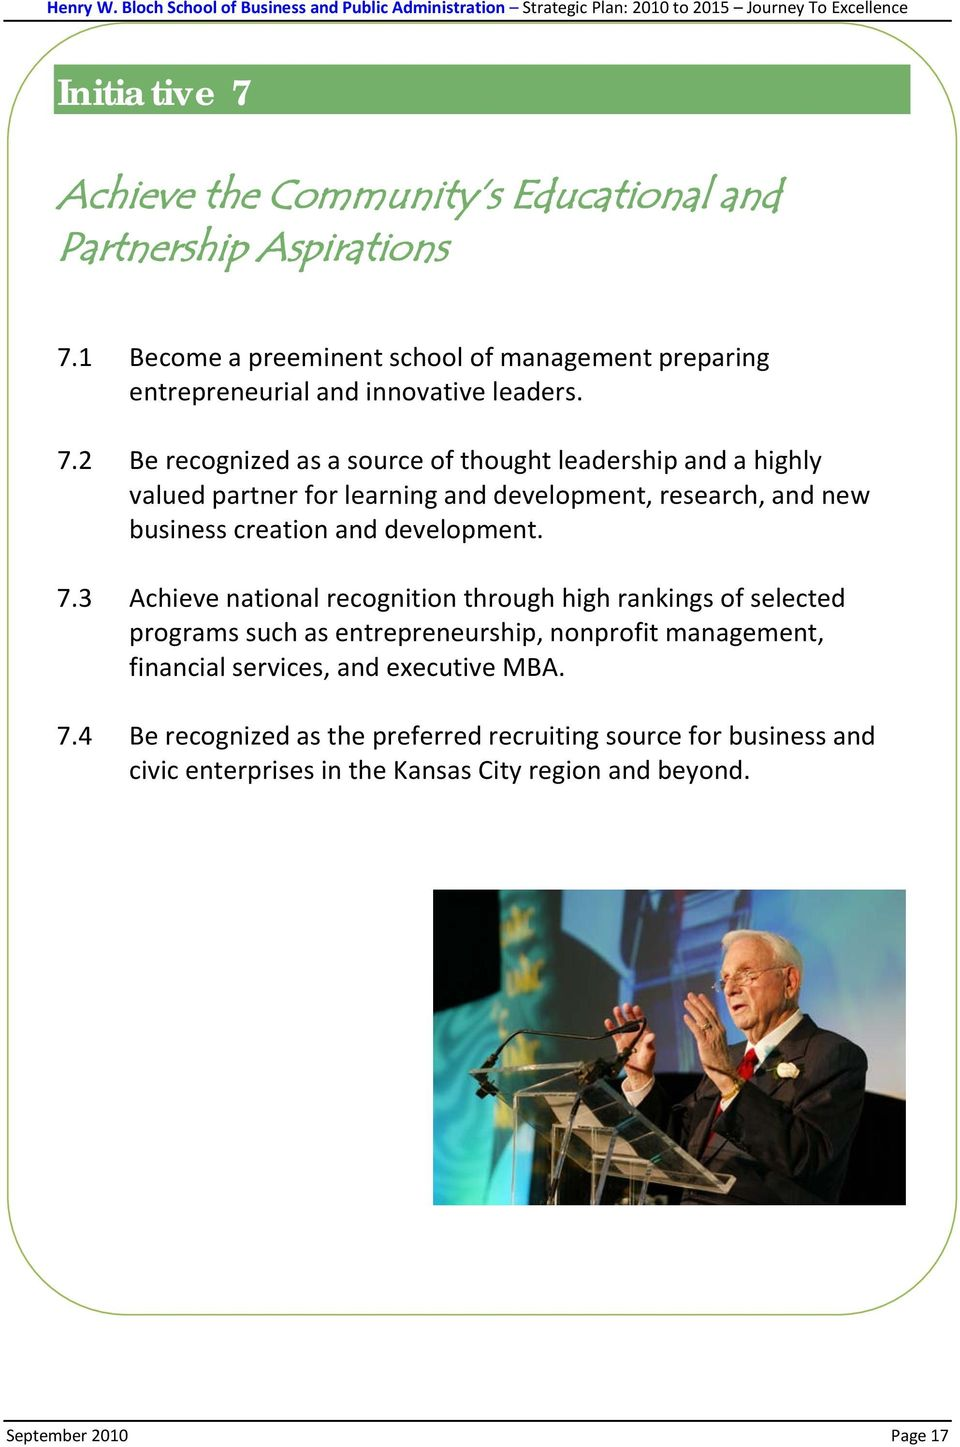 Journey to Excellence - PDF